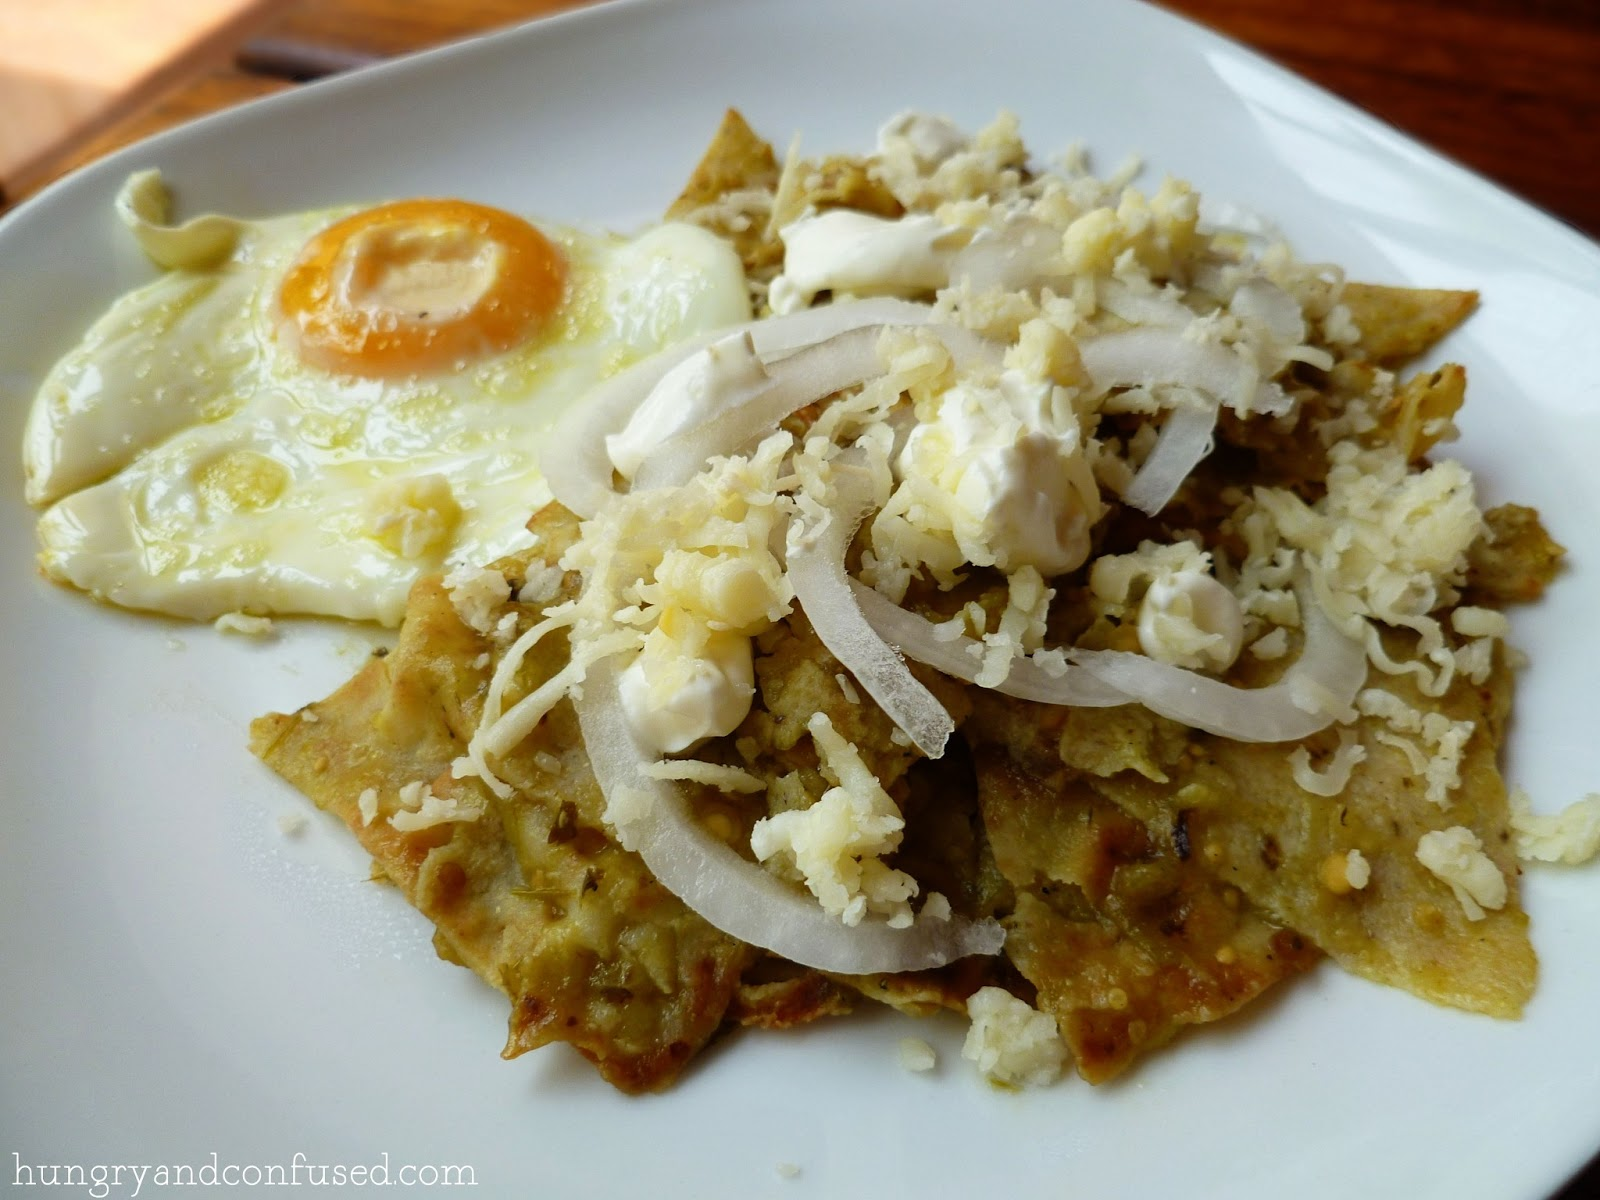 Since being in Mexico, chilaquiles has become one of my favourite ...